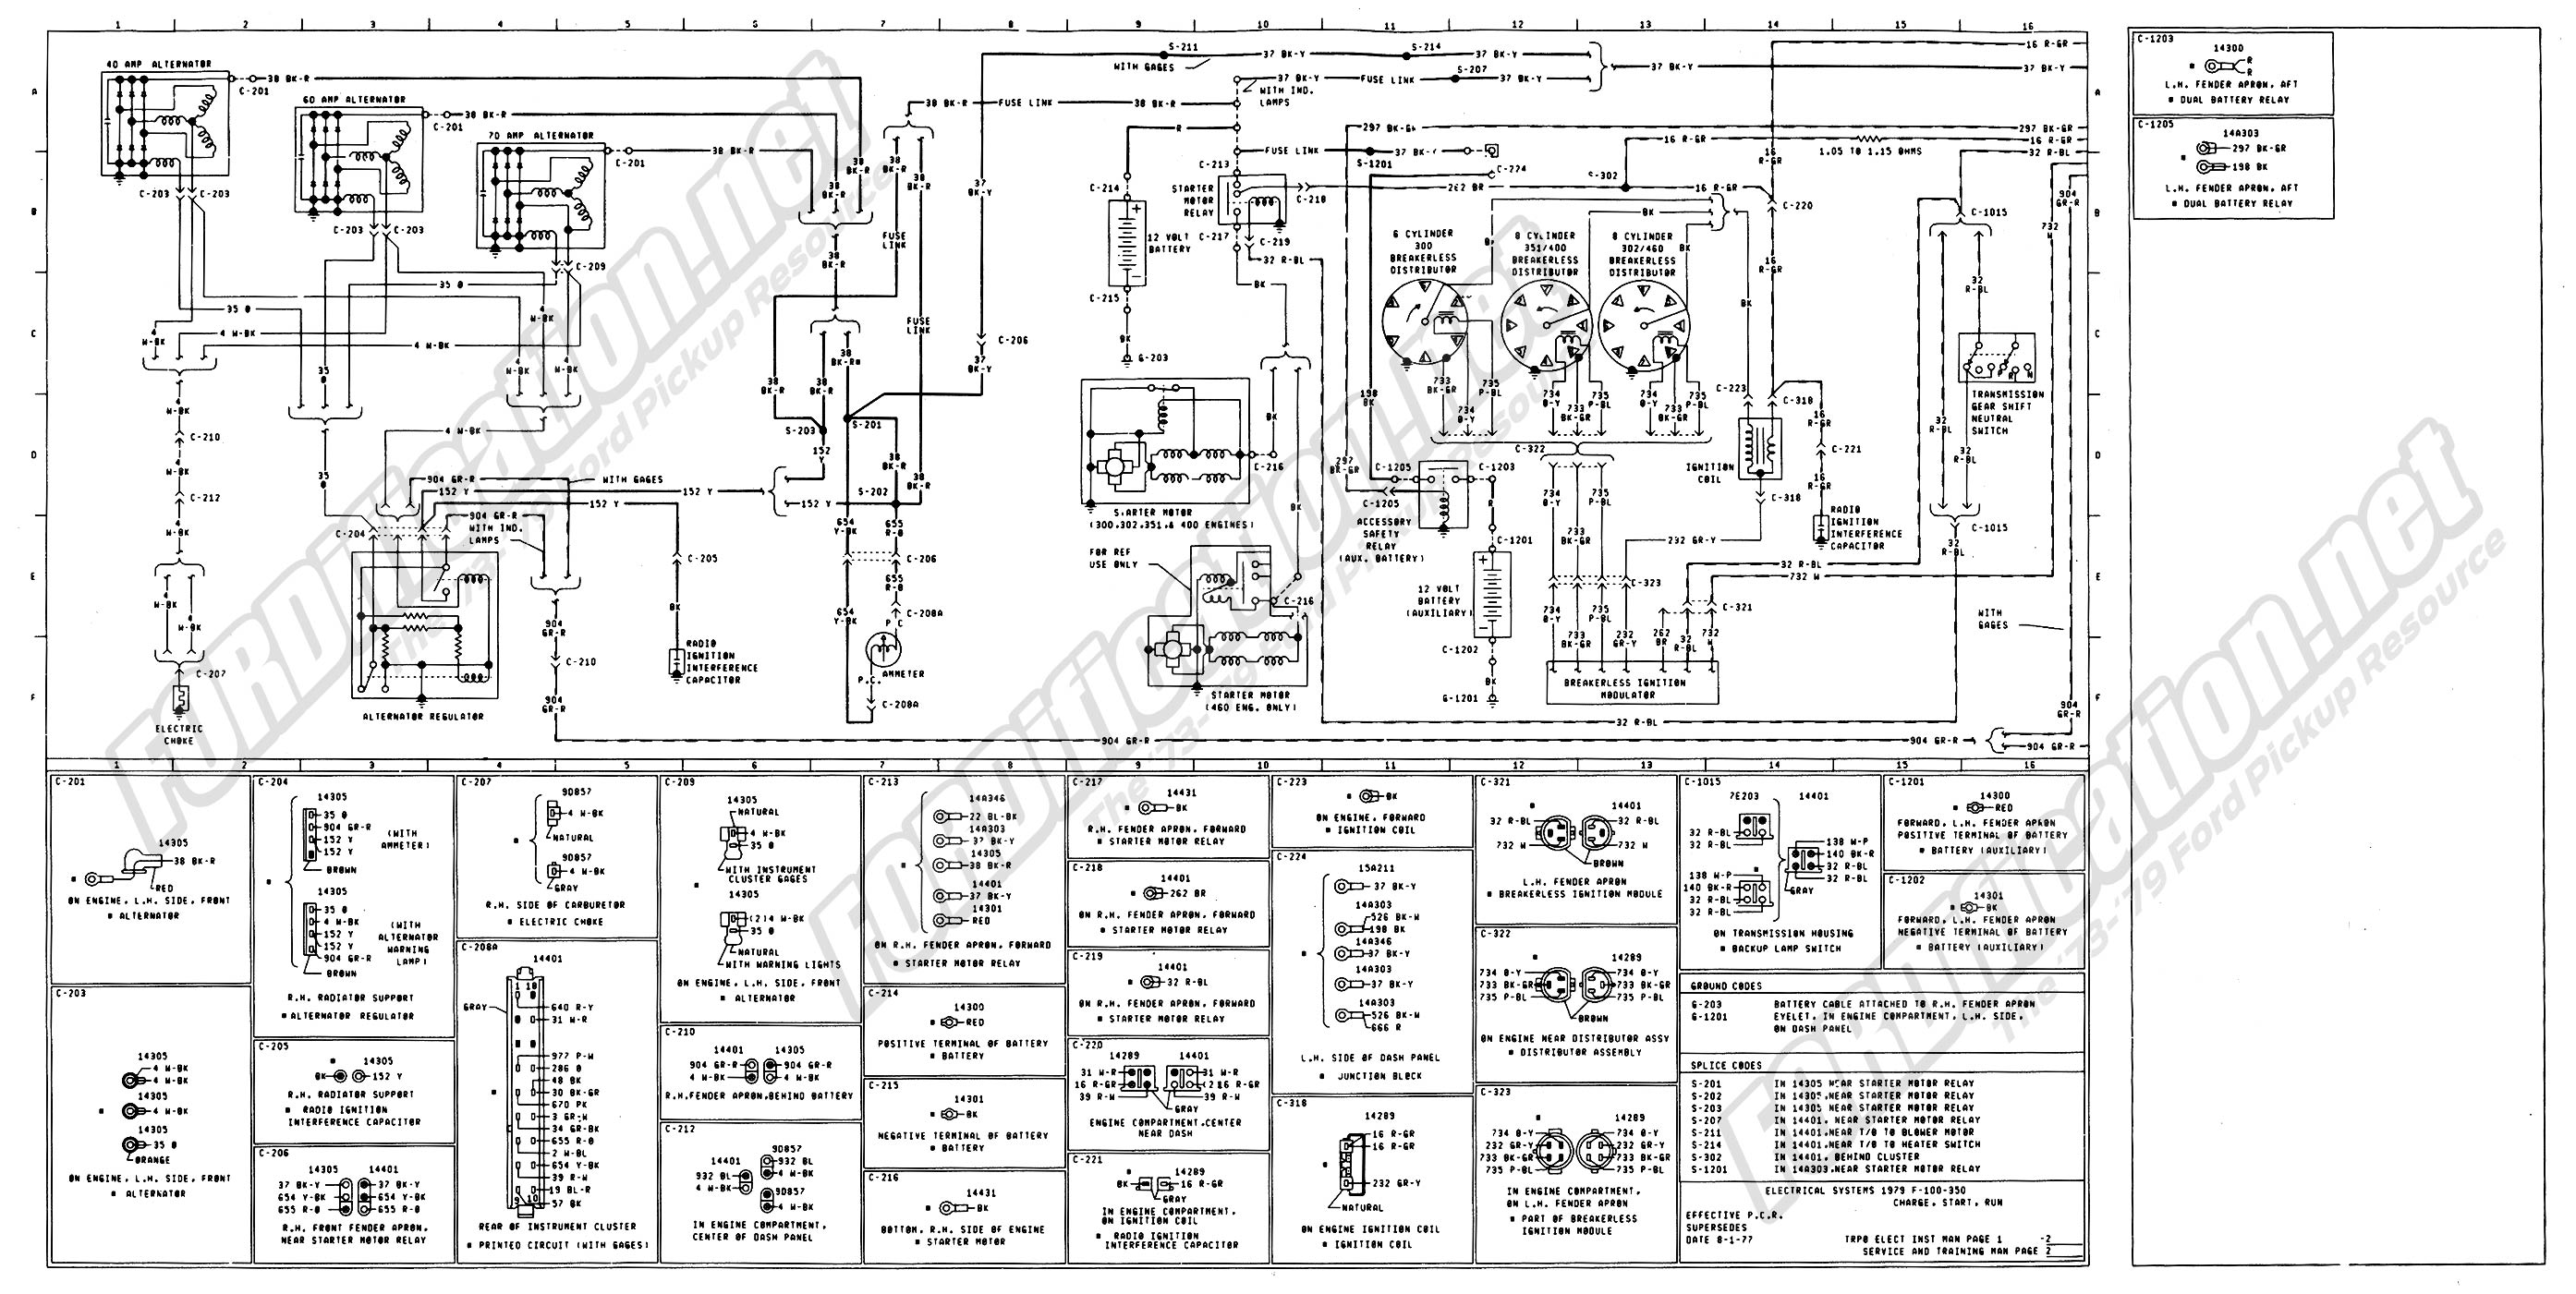 f100 alternator wiring diagram for 1983 help with 79 f100 alternator not charging - ford truck ... 1977 ford f100 alternator wiring diagram